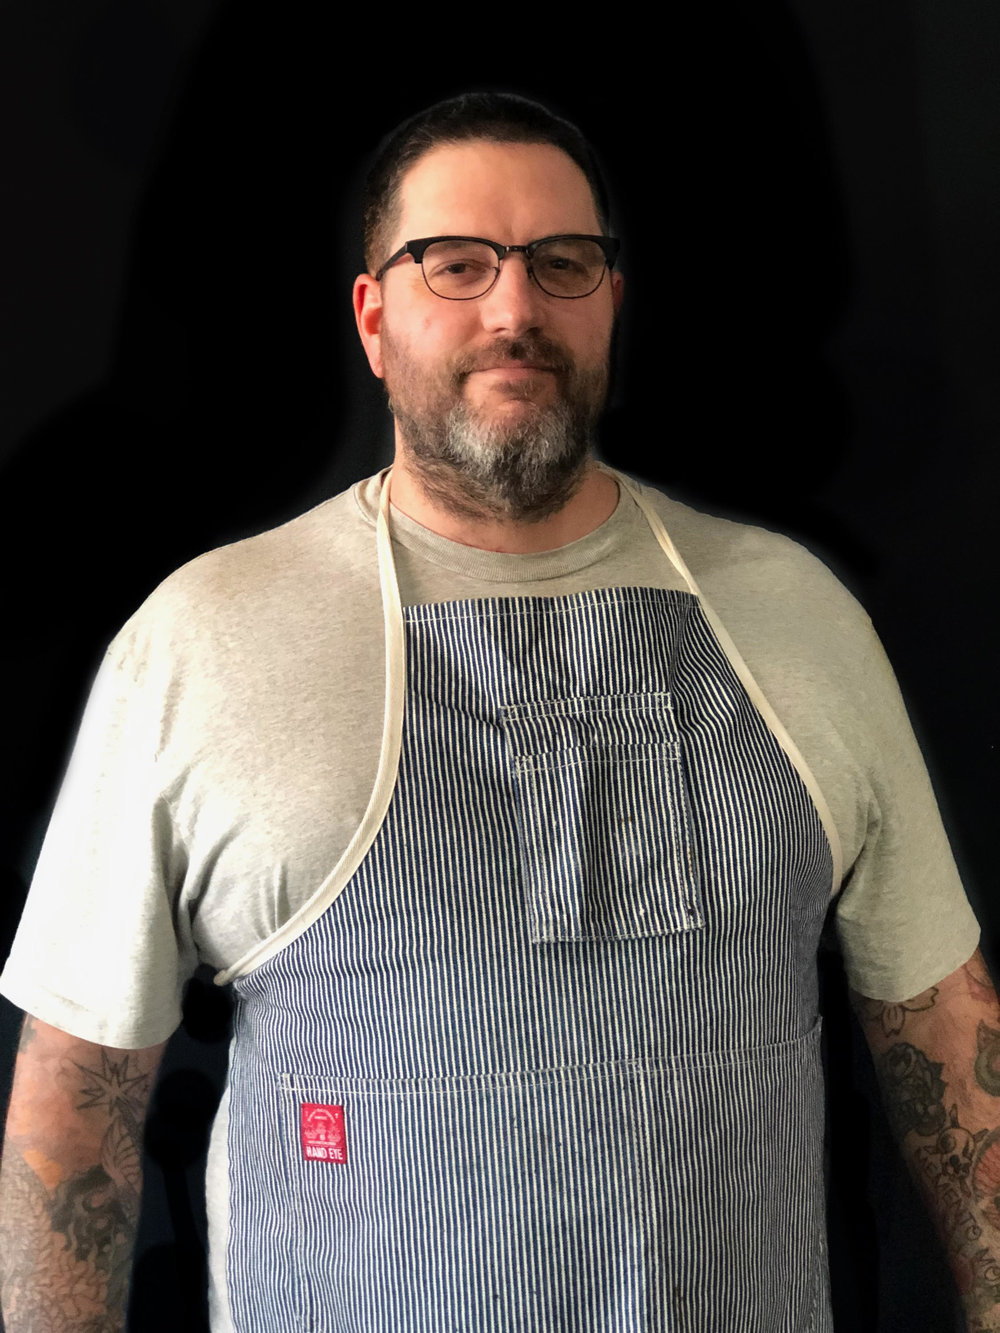 KYLE GROVER    DULUTH MN & BAYFIELD WI    Kyle Grovers Hours:  Now booking for March 2019   DULUTH MN -  Mon-Thurs 12pm - 8pm   & BAYFIELD WI -  Fri-Sat 12pm - 6pm   To book with Kyle Grover:  please use our appointment page.